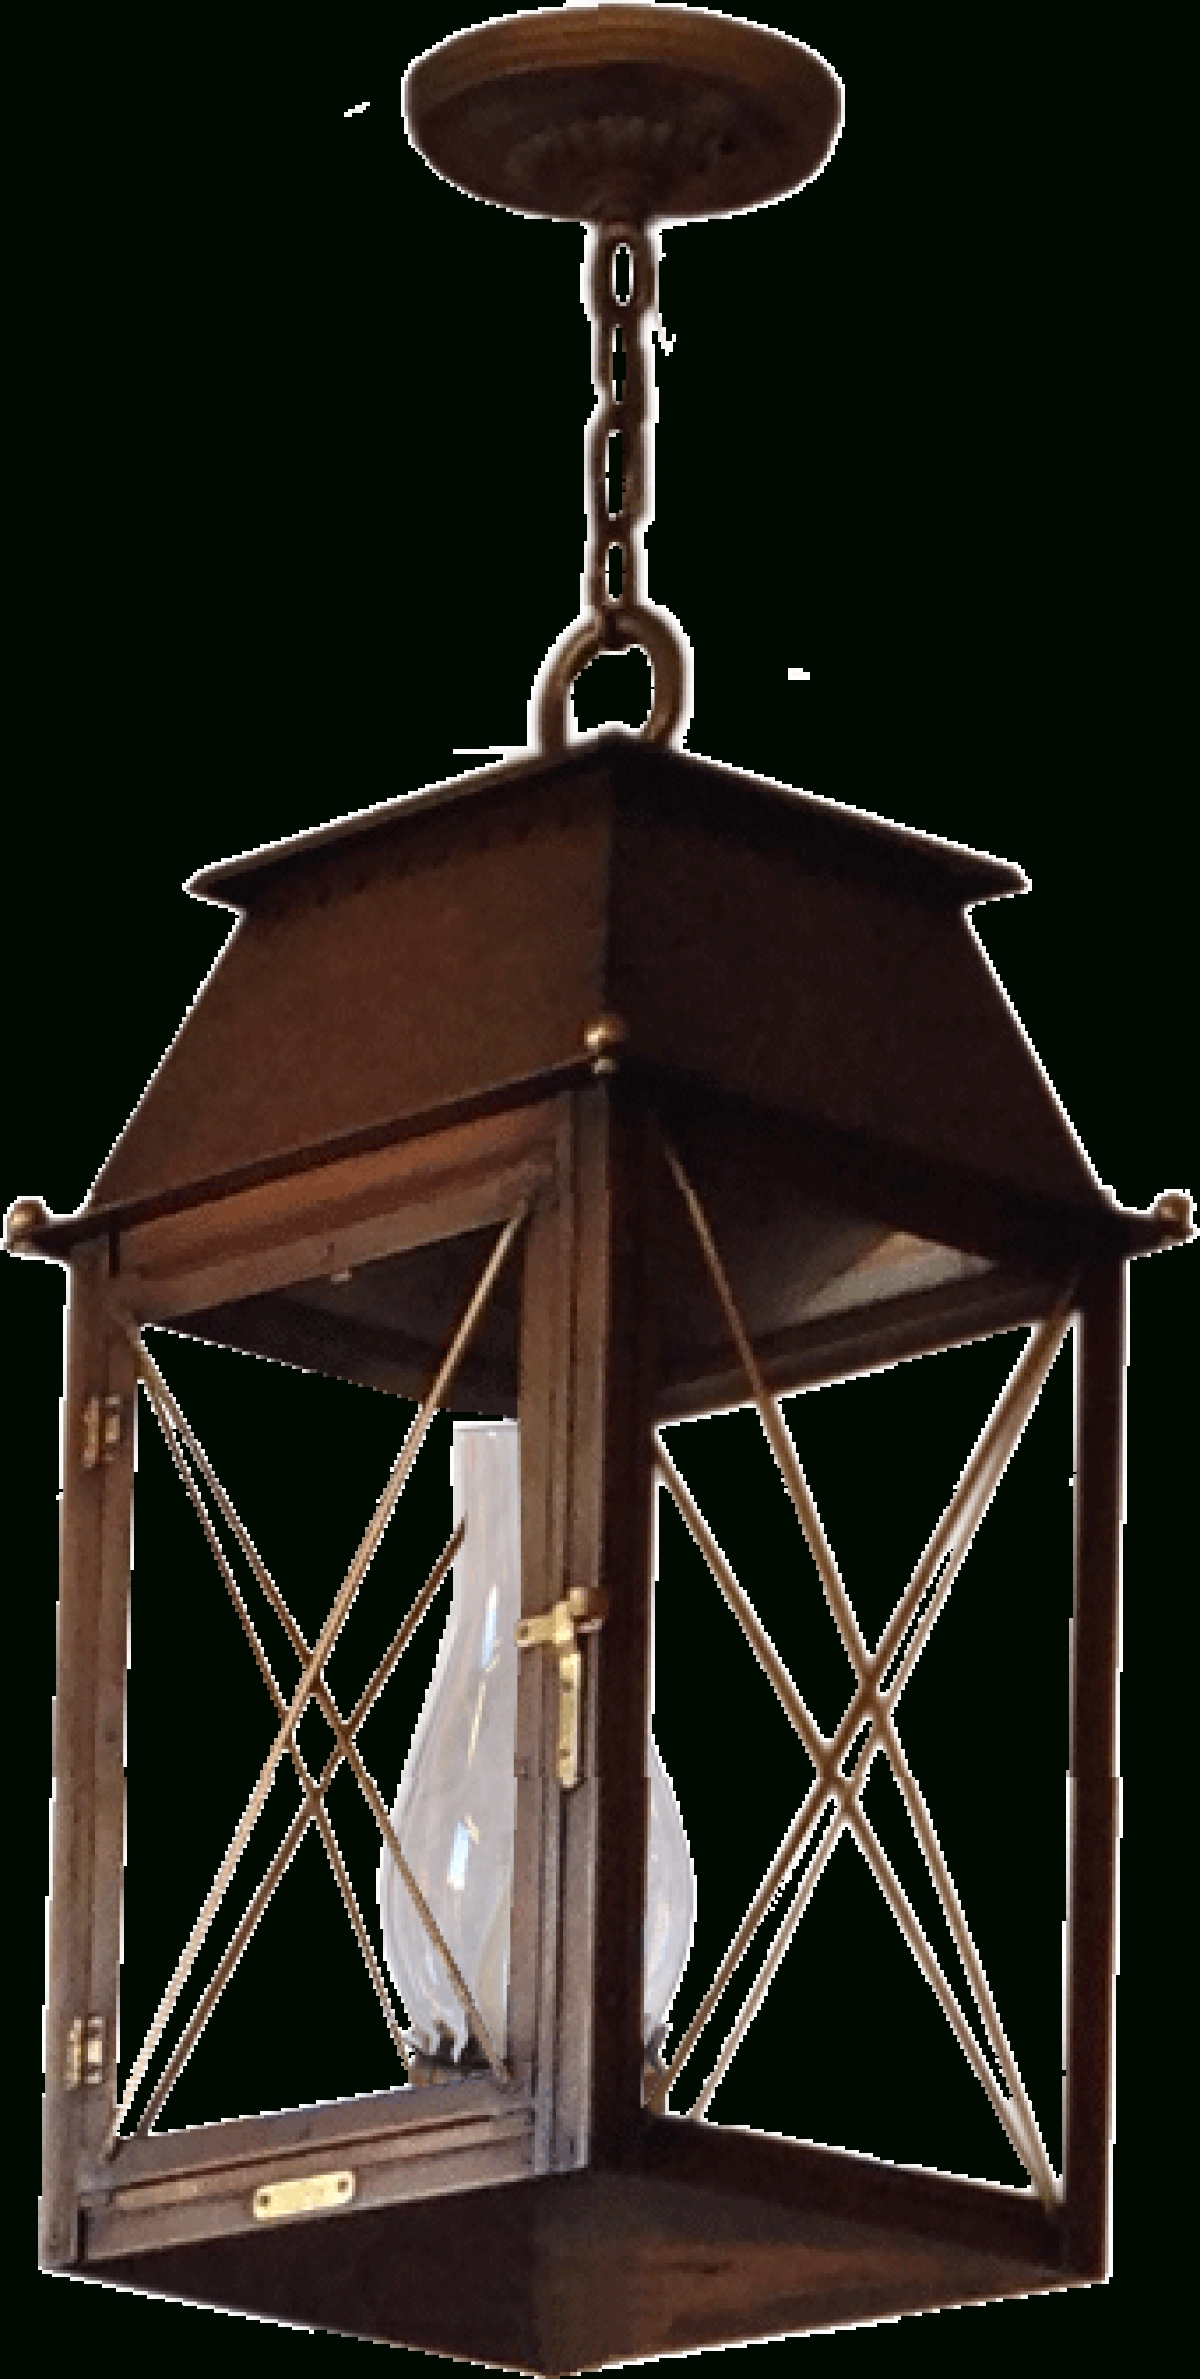 Most Popular Furniture: Chic Coach House On Hanging Chainbevolo For Outdoor For Outdoor Hanging Coach Lanterns (View 6 of 20)